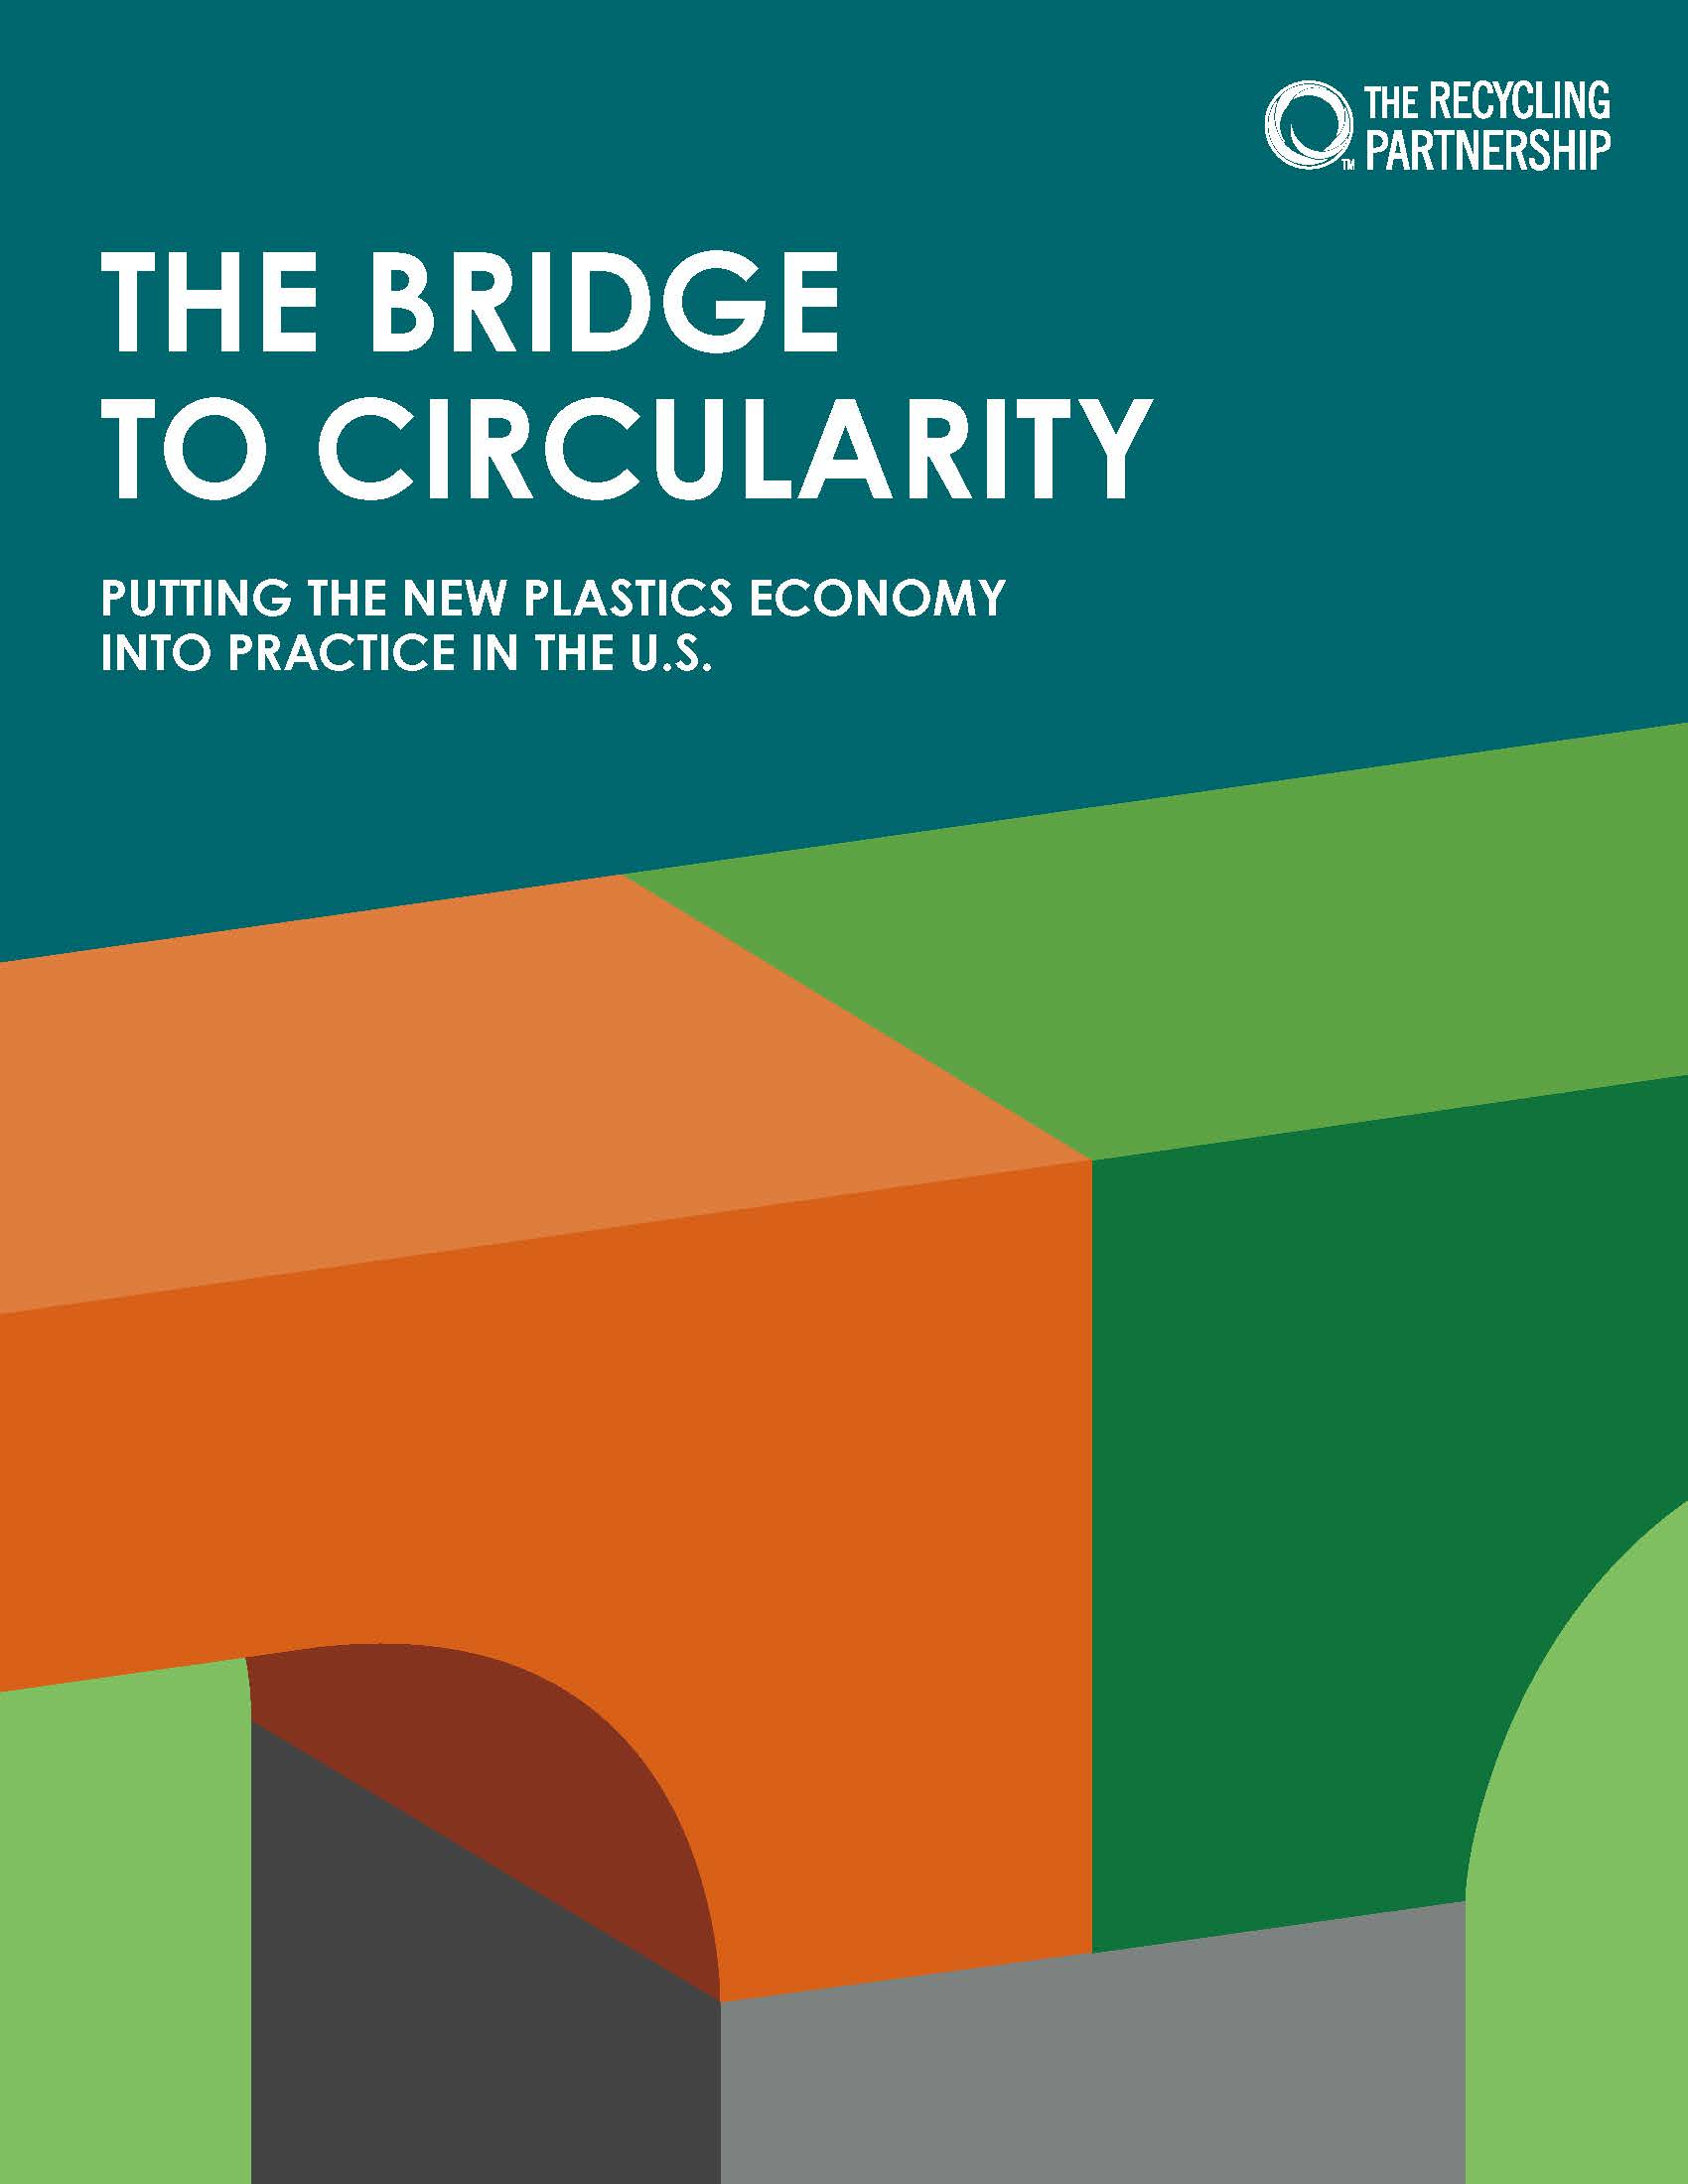 The Recycling Partnership Bridge to Circularity Report